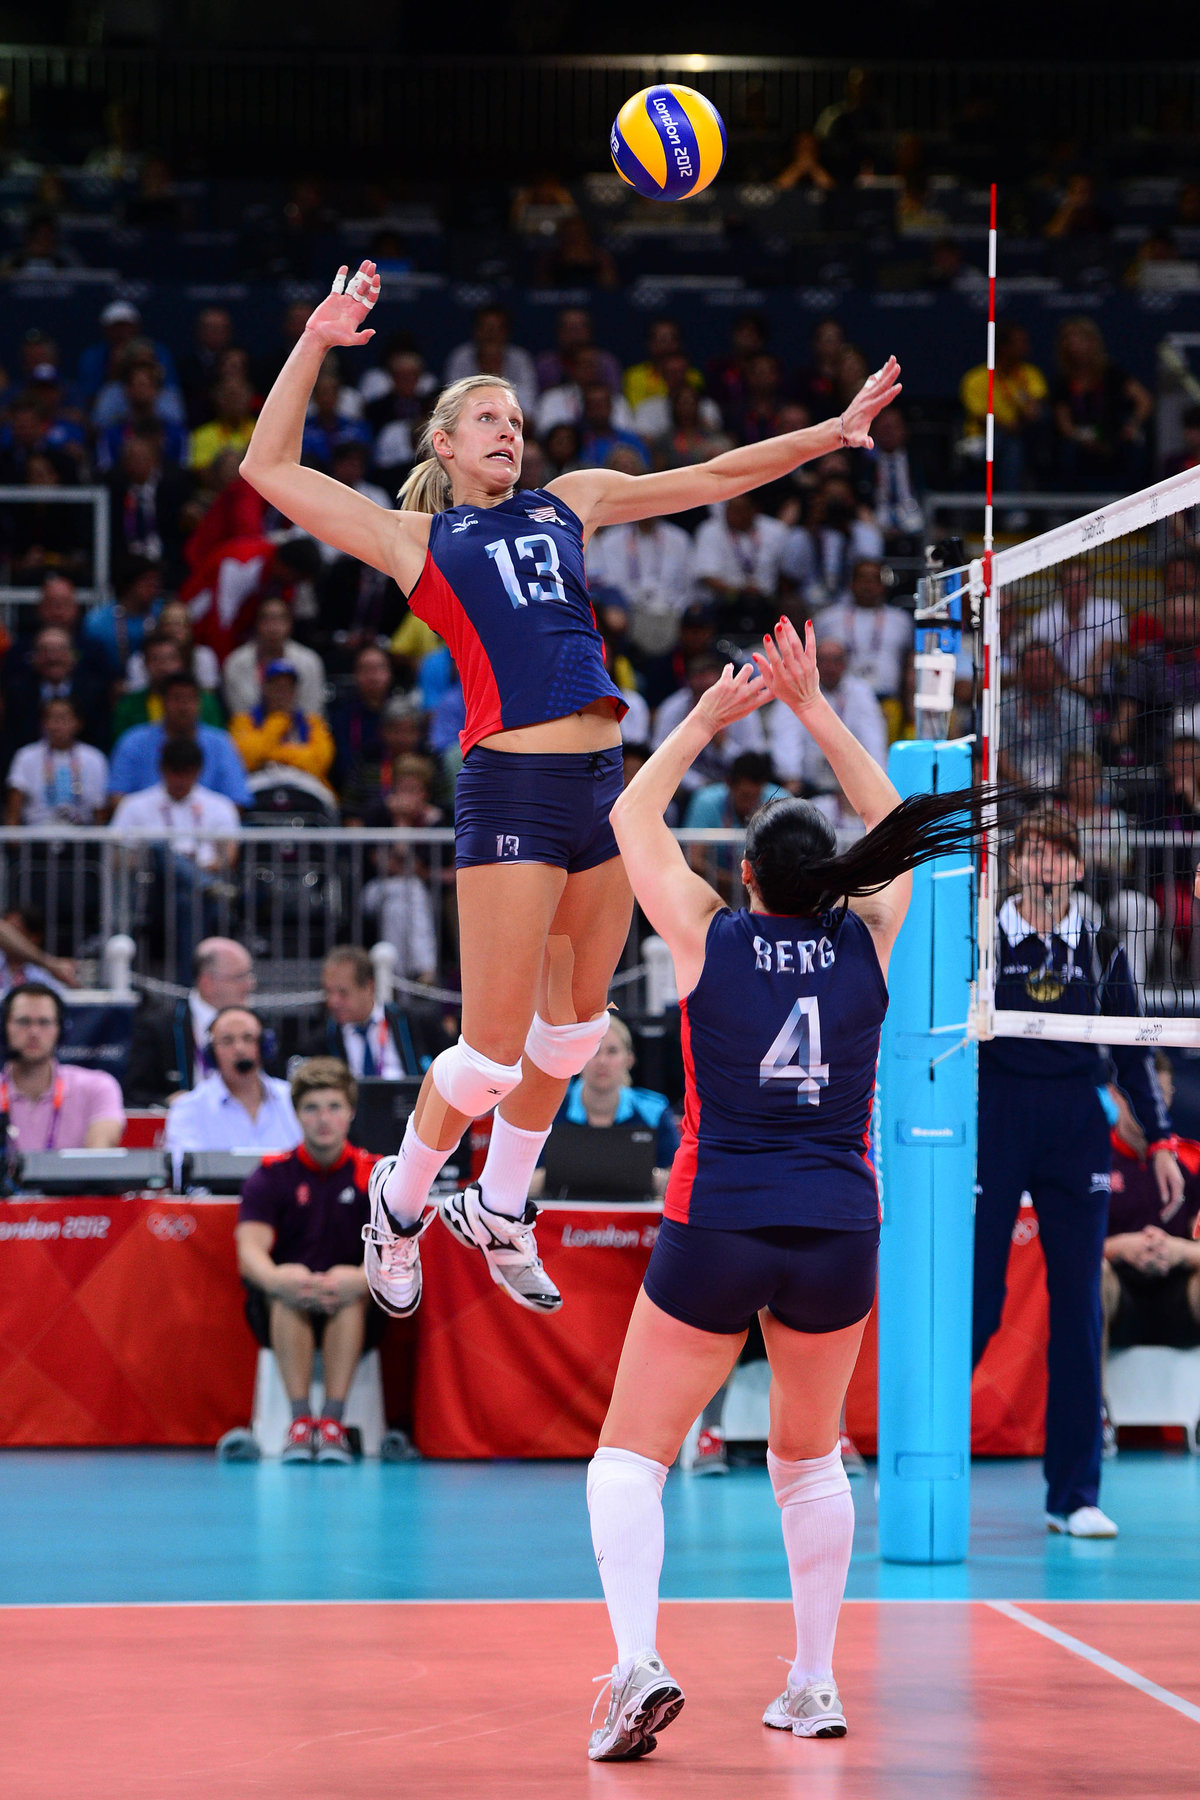 volley ball Set up a great deal on savings this year on outdoor or indoor volleyball equipment and gear save 20 to 40 on quality discount volleyball training equipment, workouts, aids, videos, jump and strength training, and more.